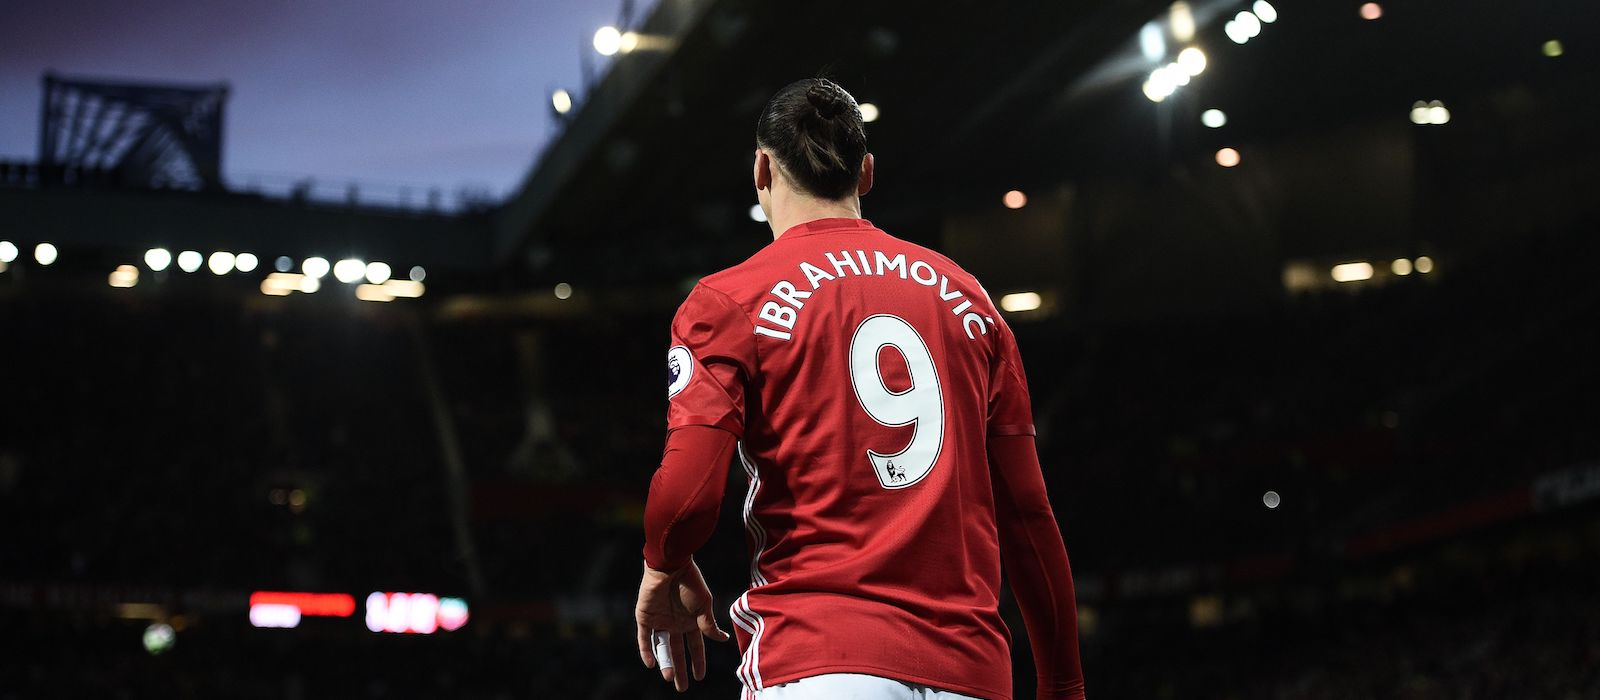 Mino Raiola refuses to rule out MLS move for Zlatan Ibrahimovic